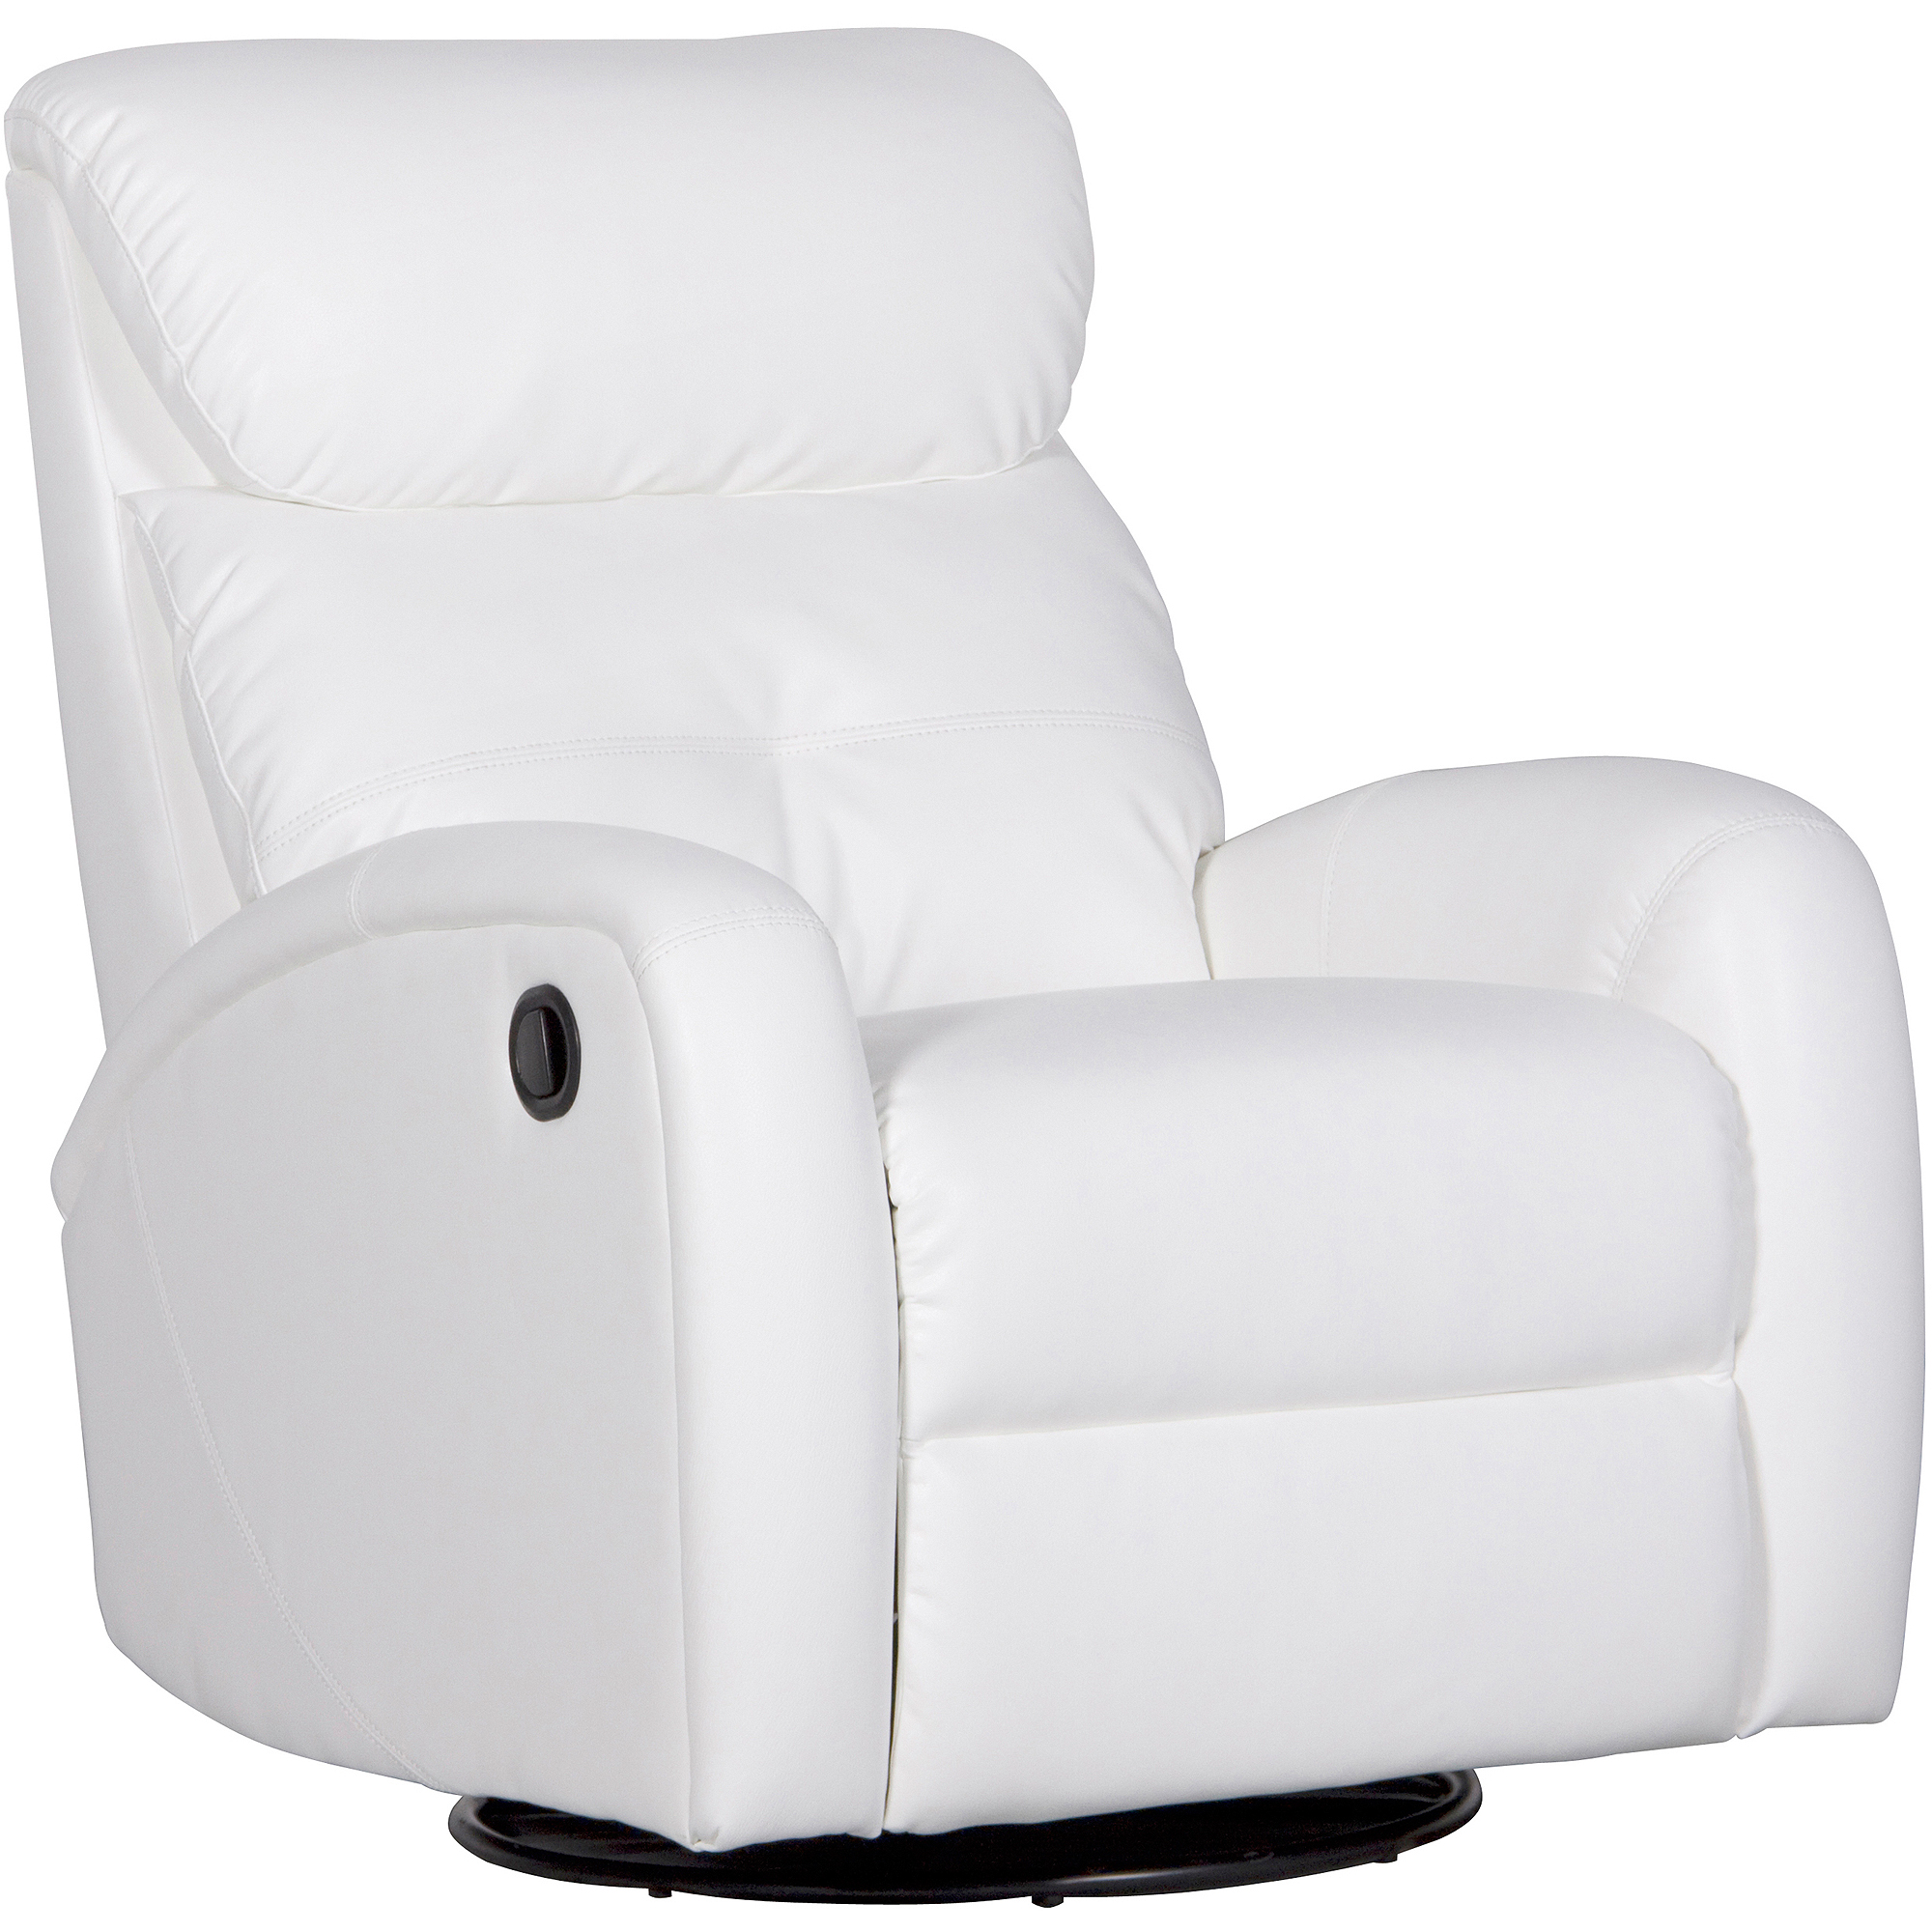 White Leather Swivel Chair White Leather Swivel Recliner Chair Declan Leather 360